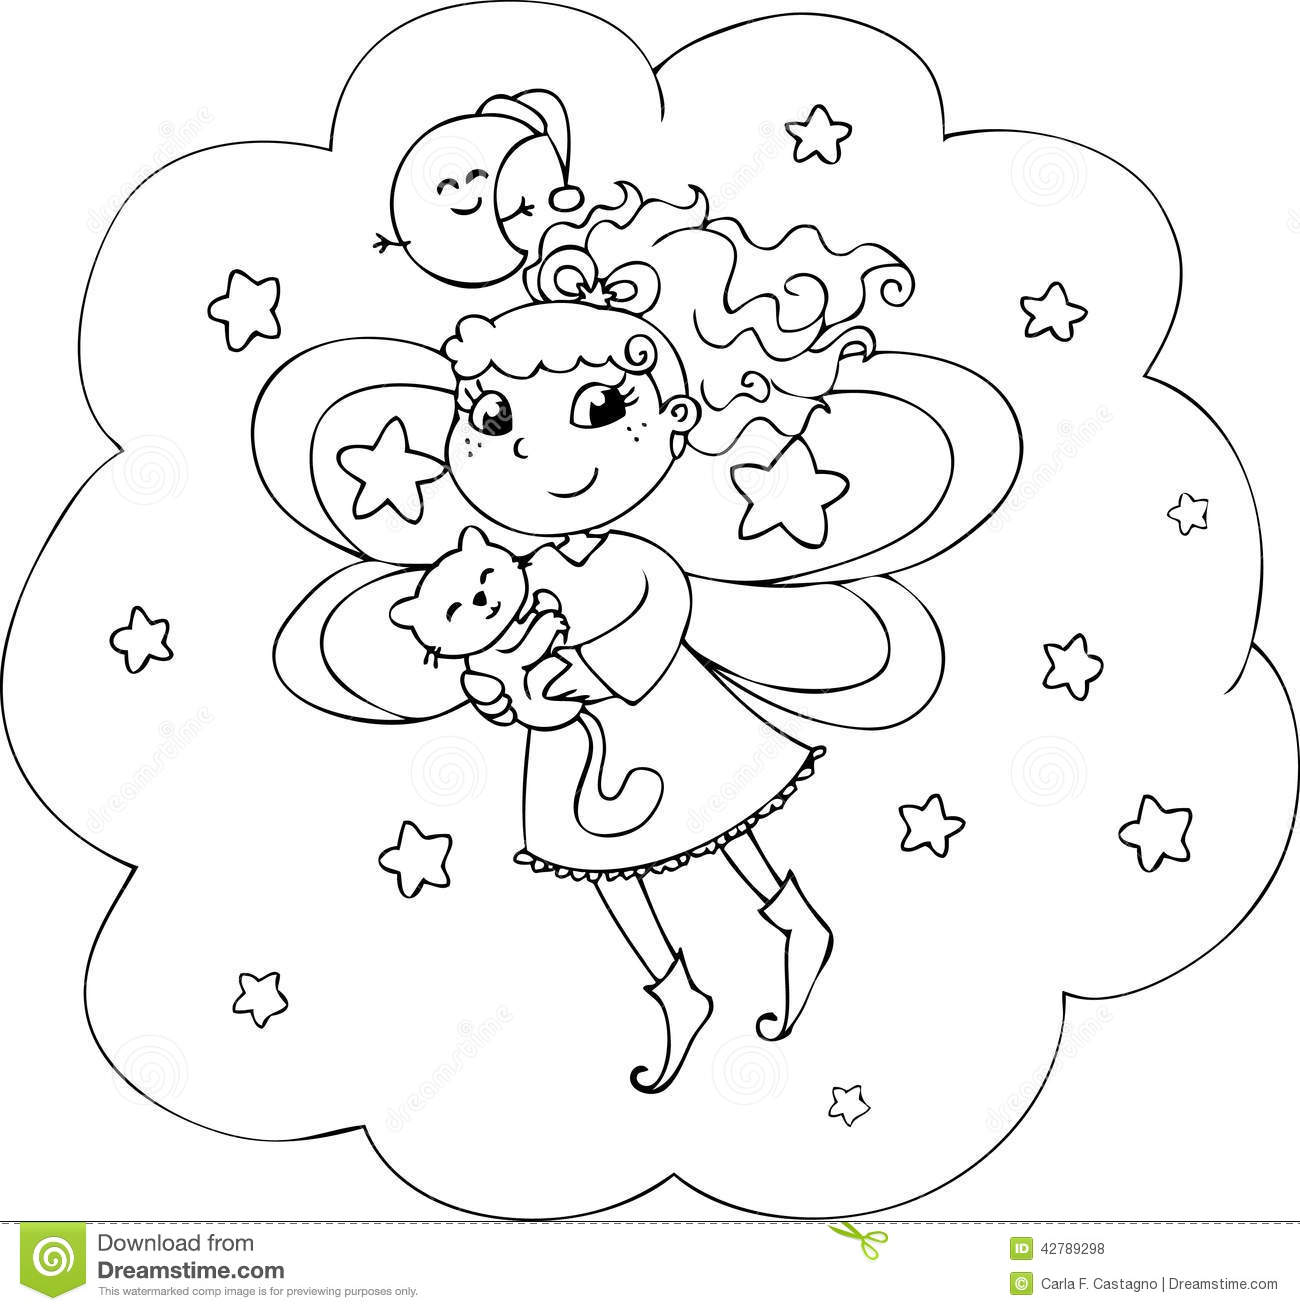 night and day coloring pages - photo#25